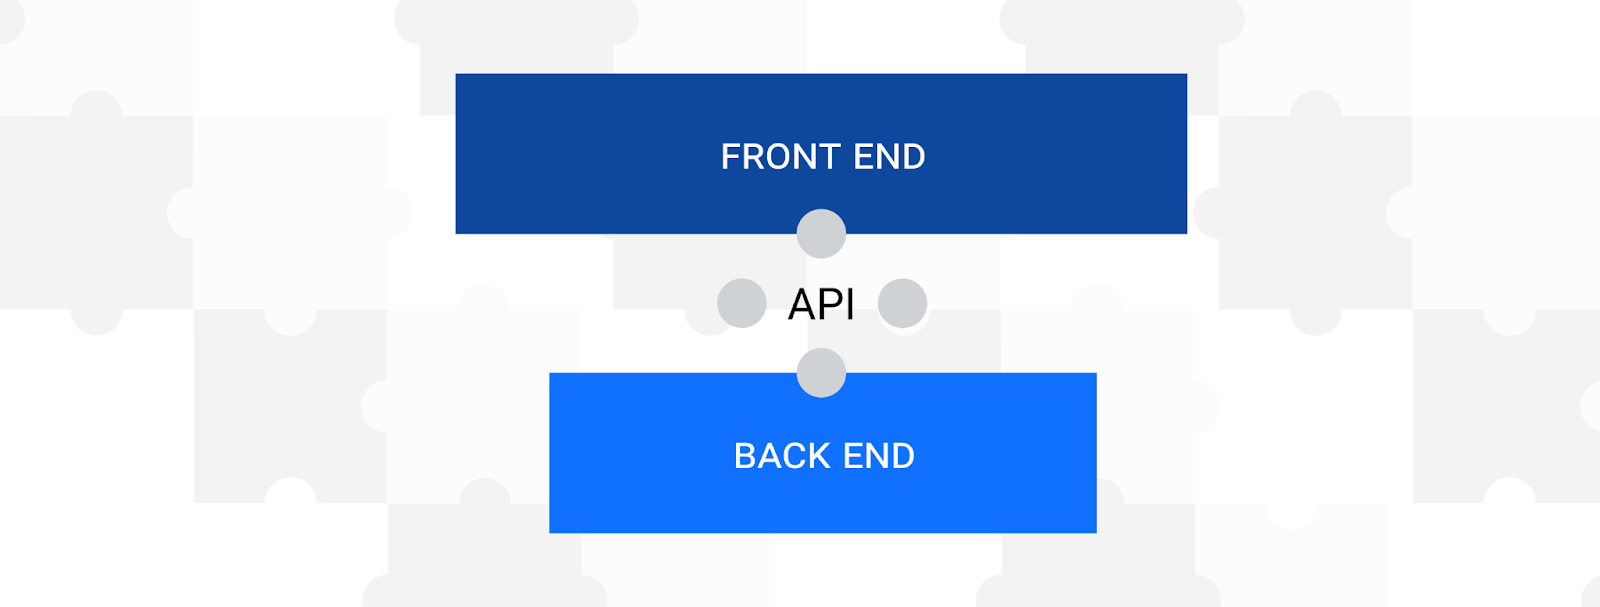 Headless eCommerce visualization: back end connected to front end through API